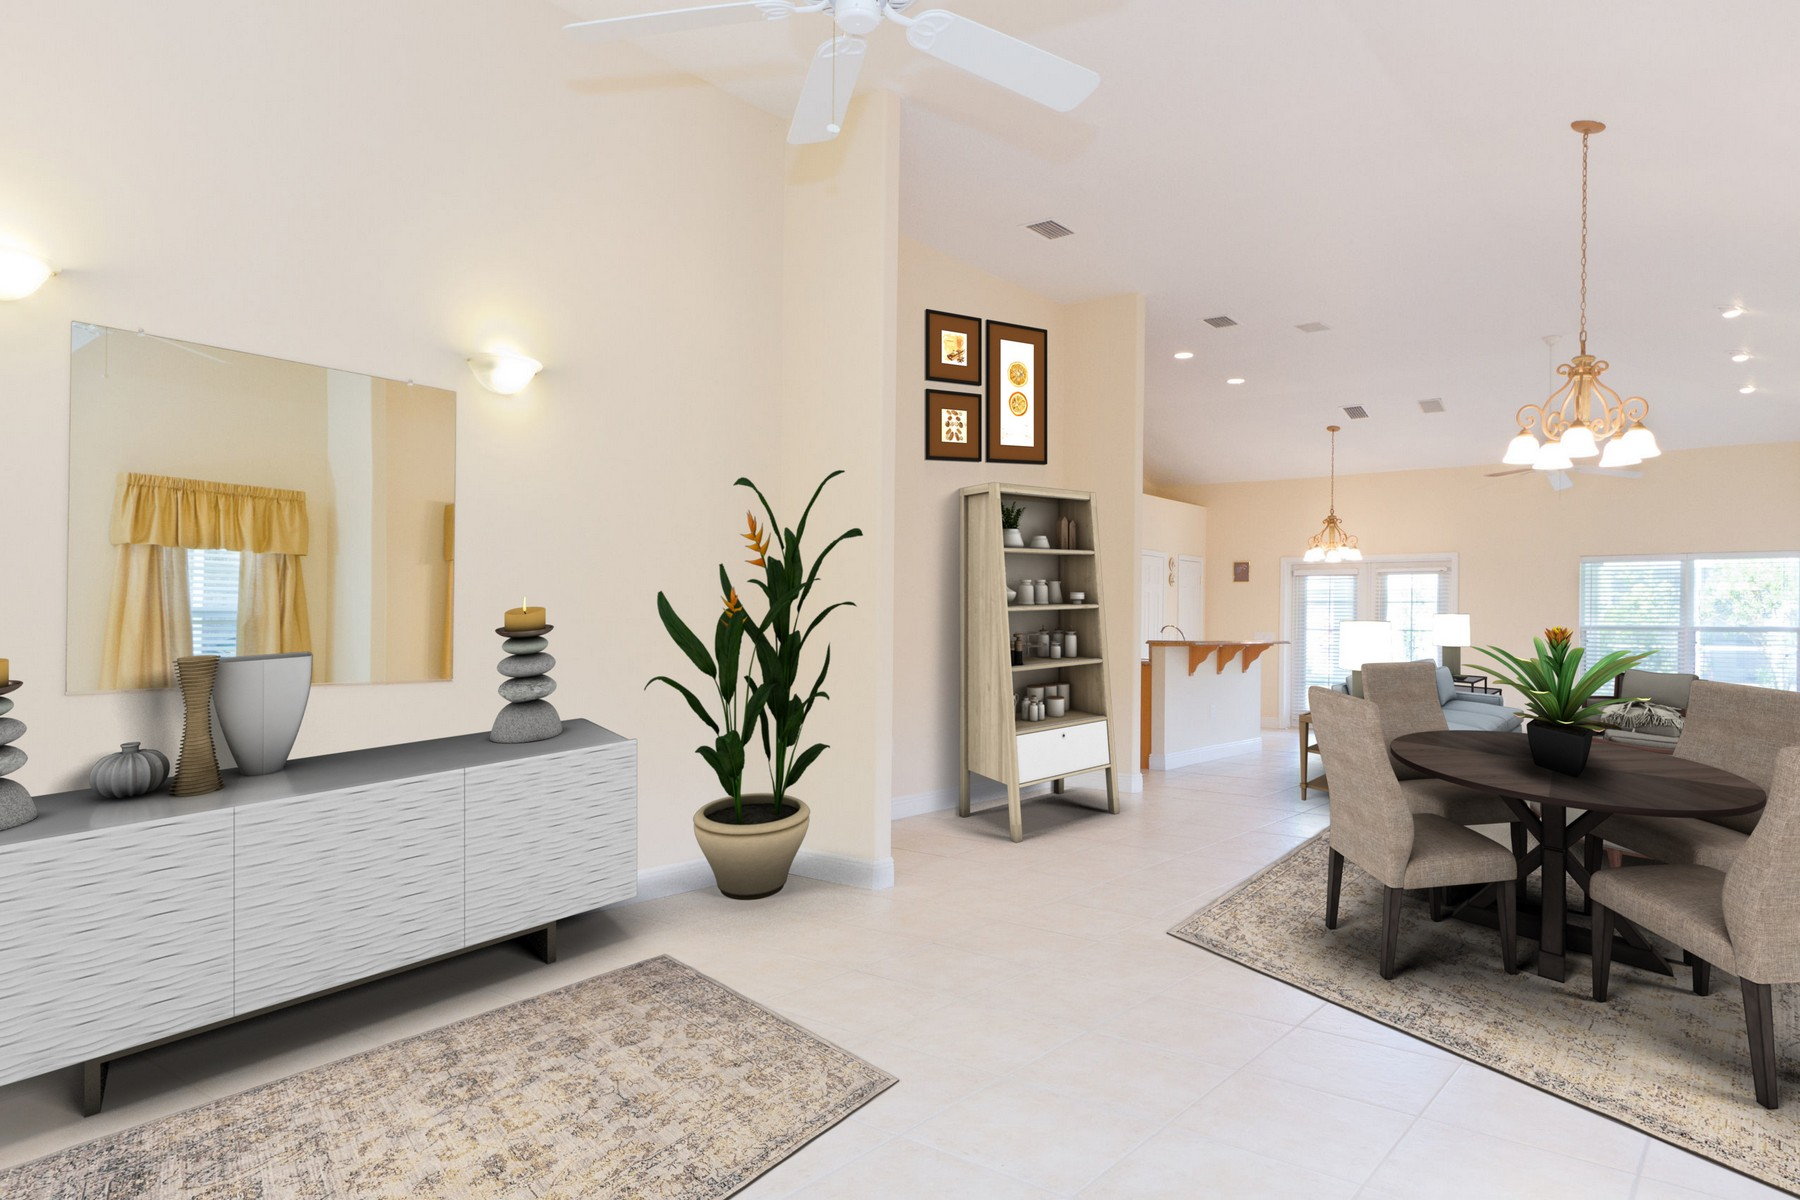 Single Family Home for Sale at Inviting Home With Generous Room Sizes and Open Concept Floorplan! 771 Brookedge Terrace Sebastian, Florida 32958 United States